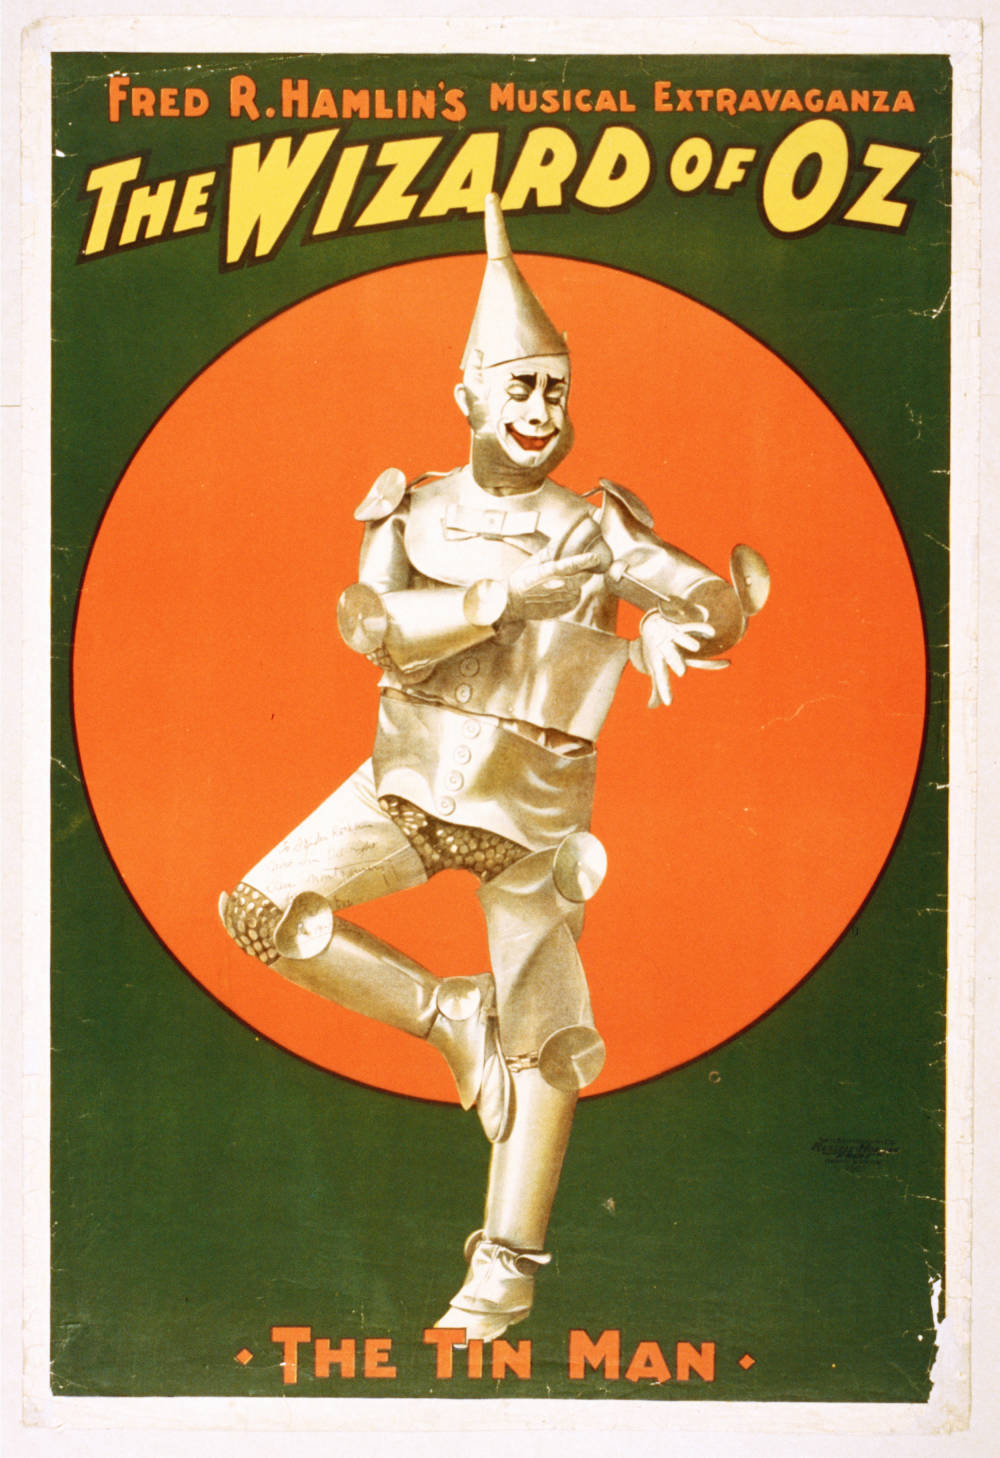 Fred r. hamlin  the wizard of oz musical  poster  1903